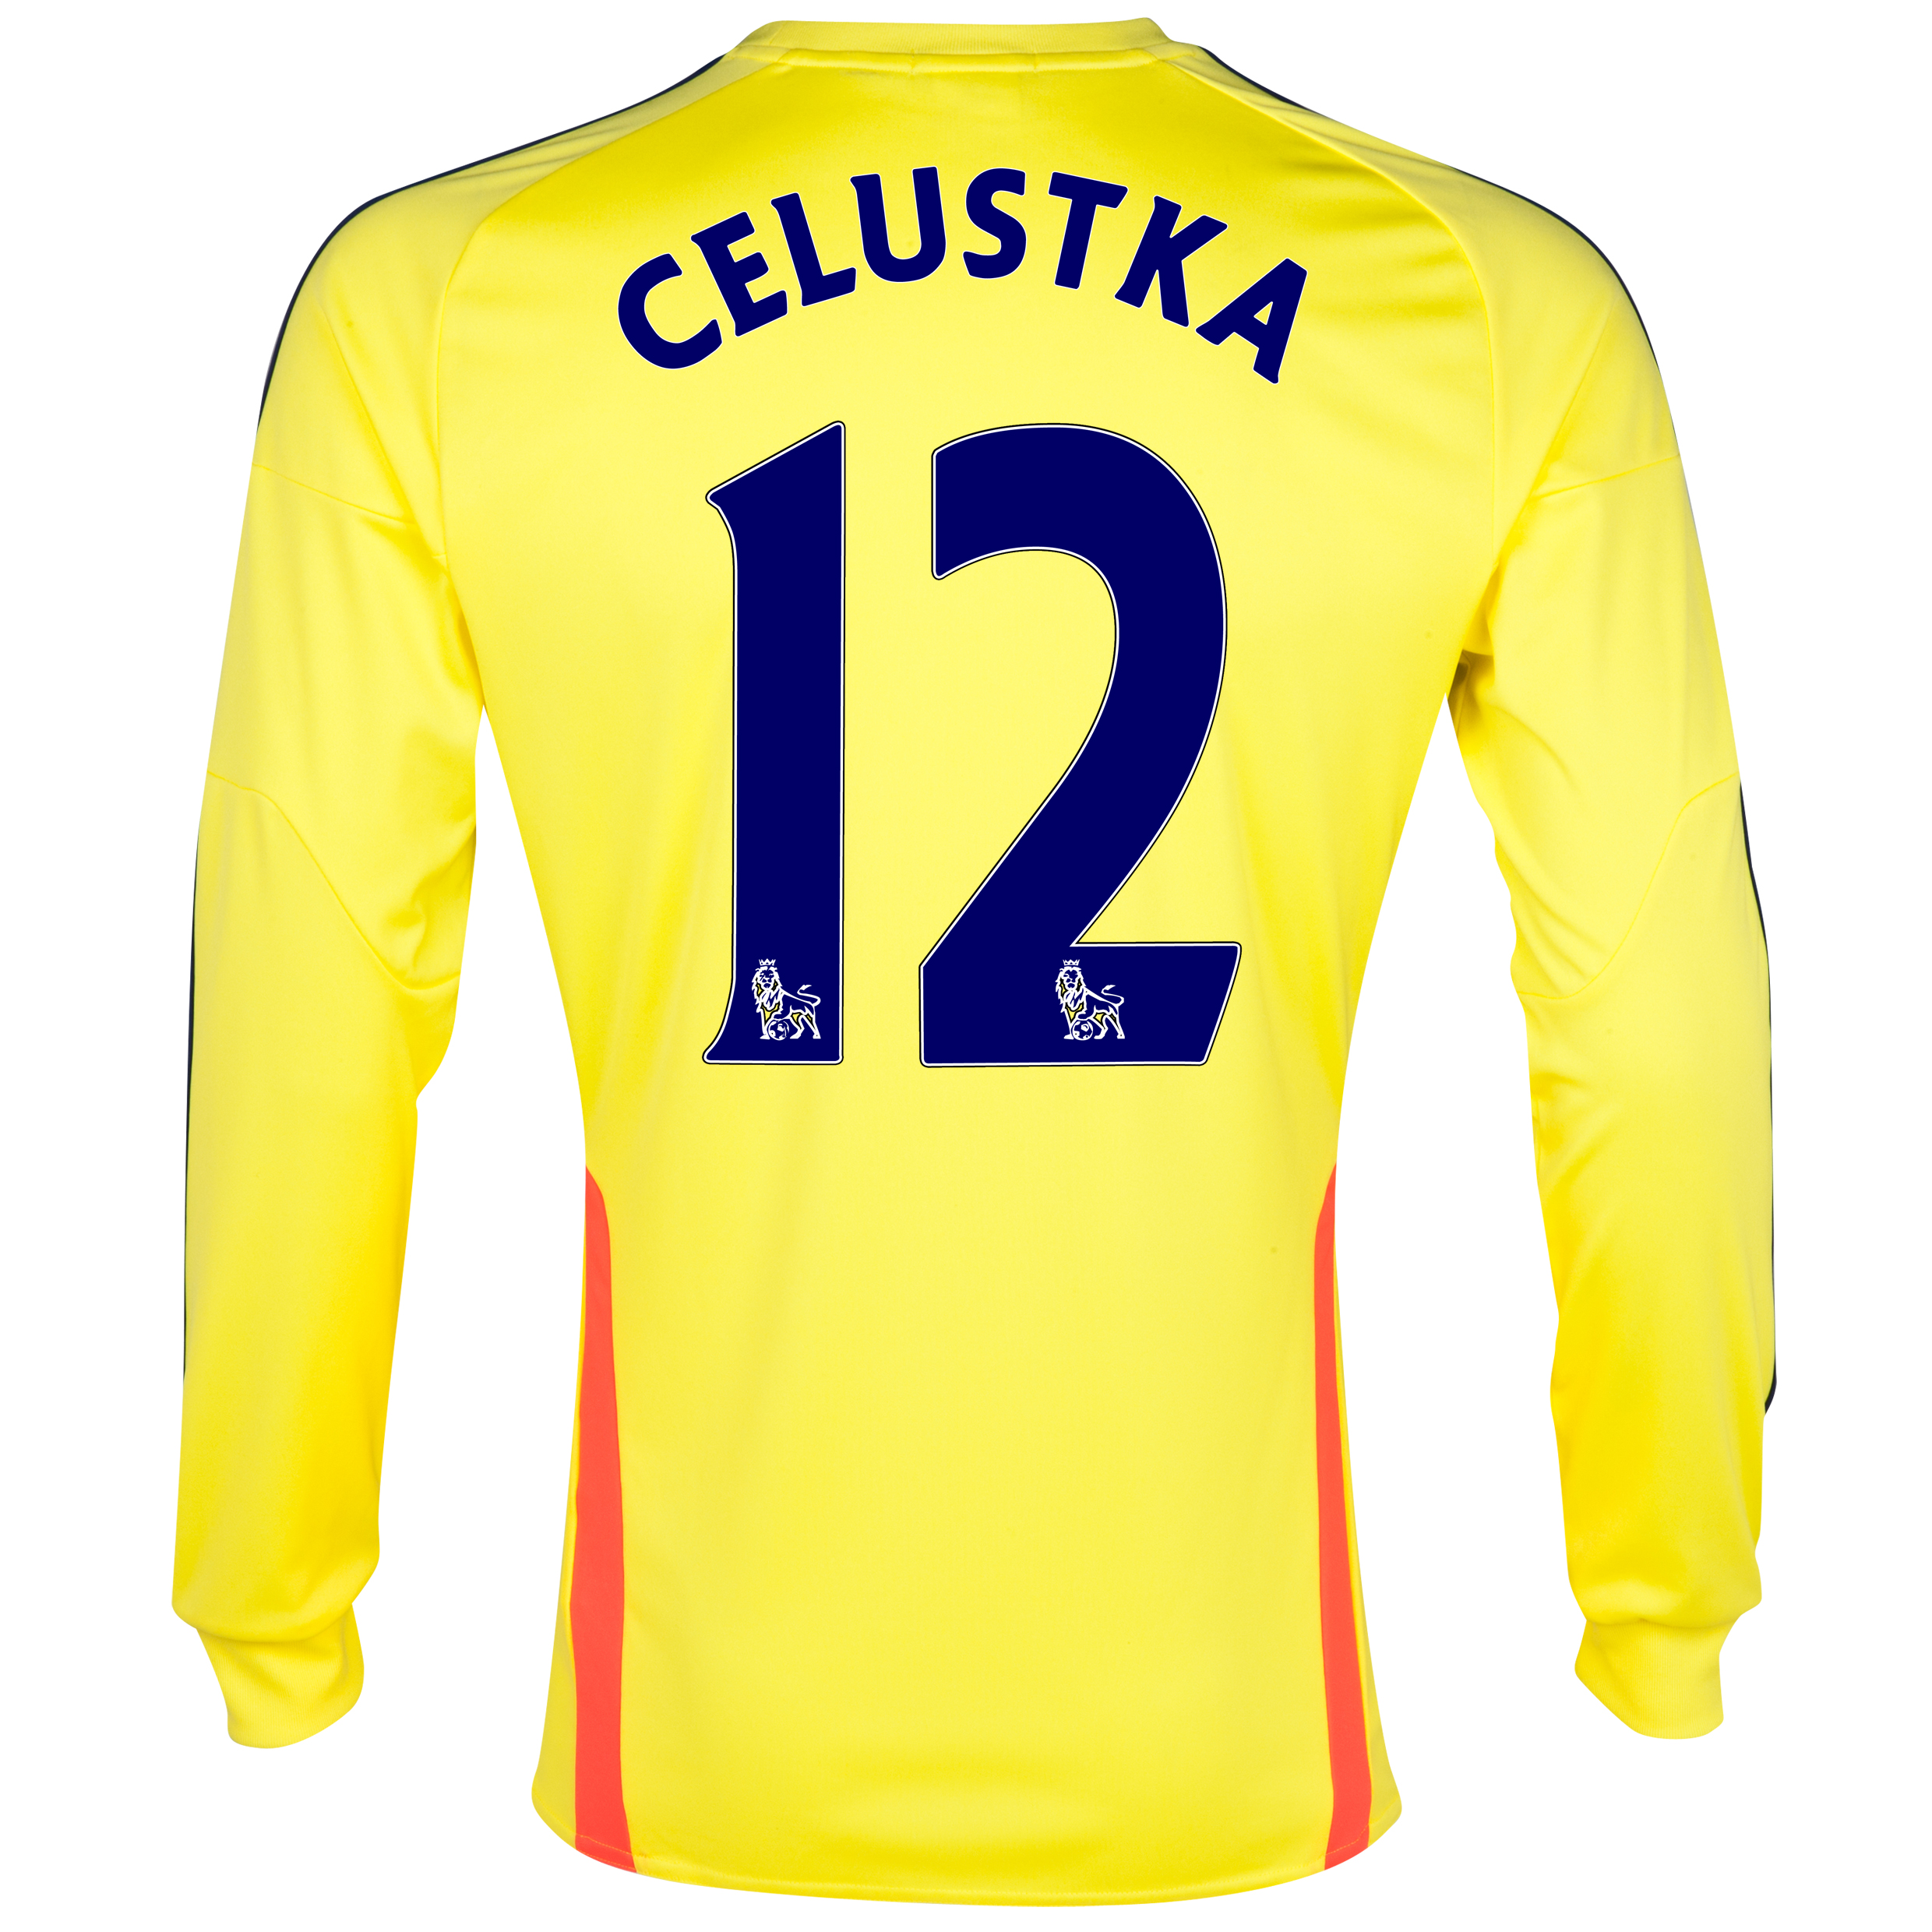 Sunderland Away Shirt 2013/14 - Long Sleeved with Celustka 12 printing